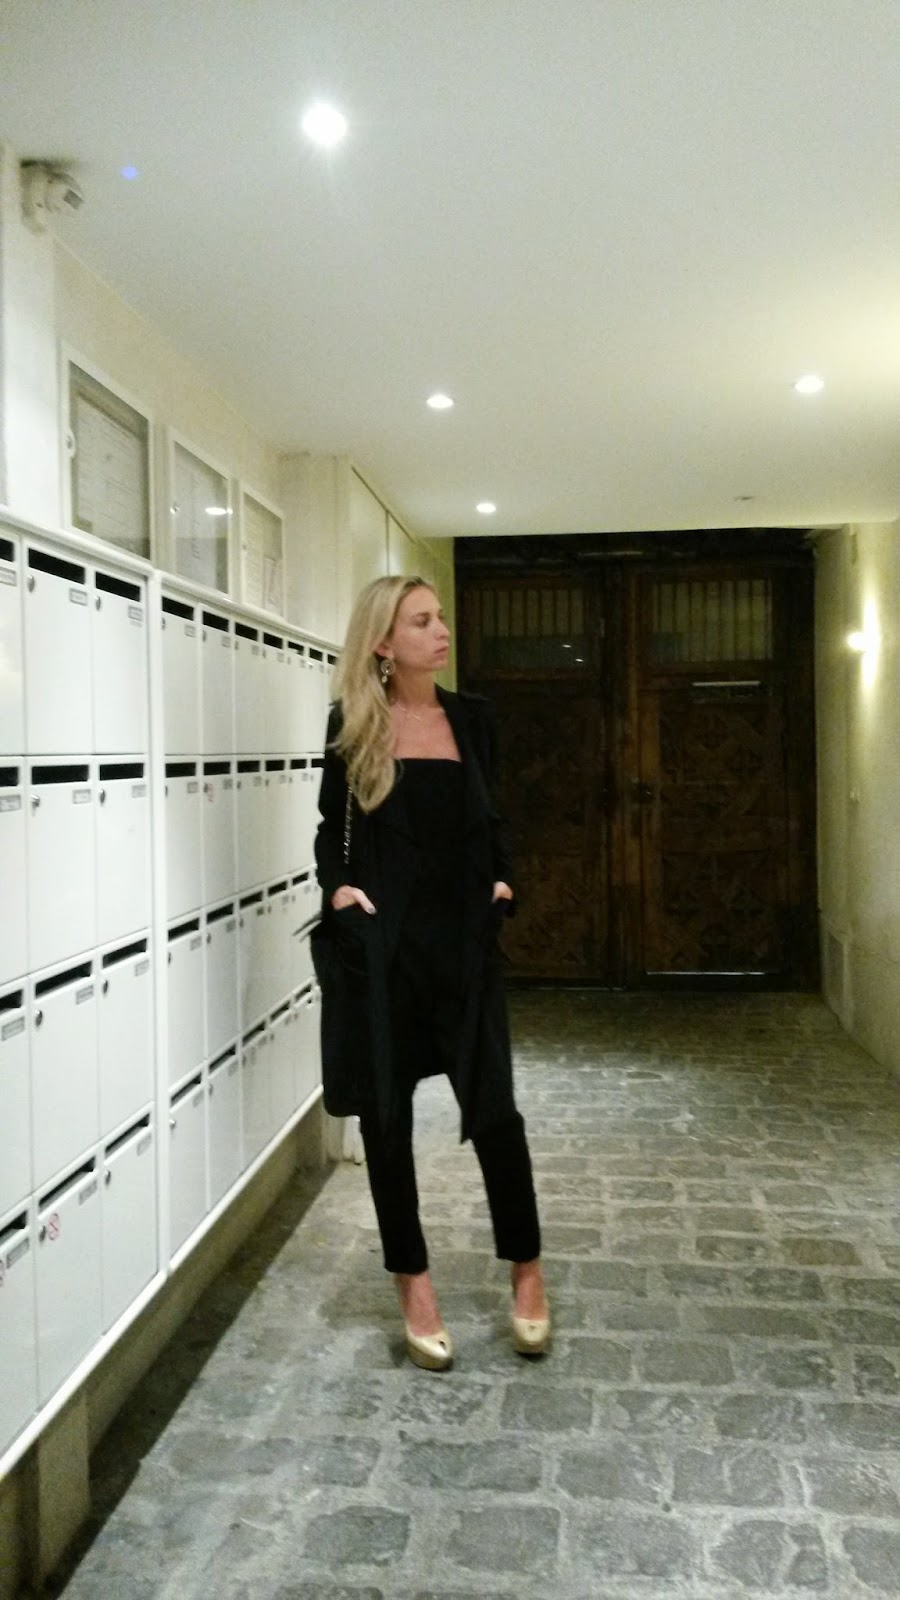 Black total look - Paris by night